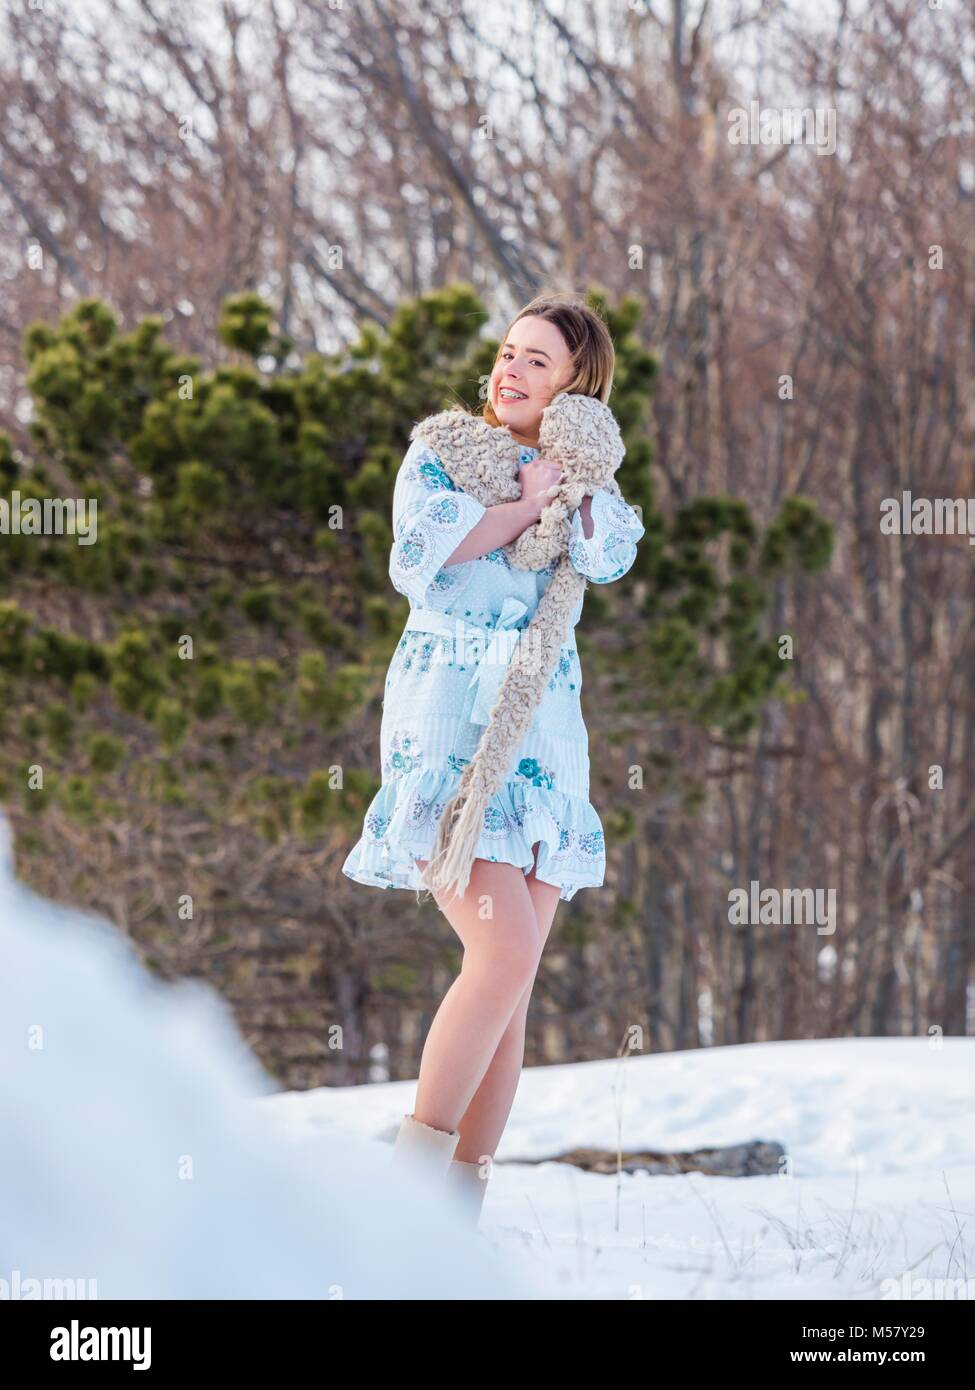 Young woman on snow - Stock Image